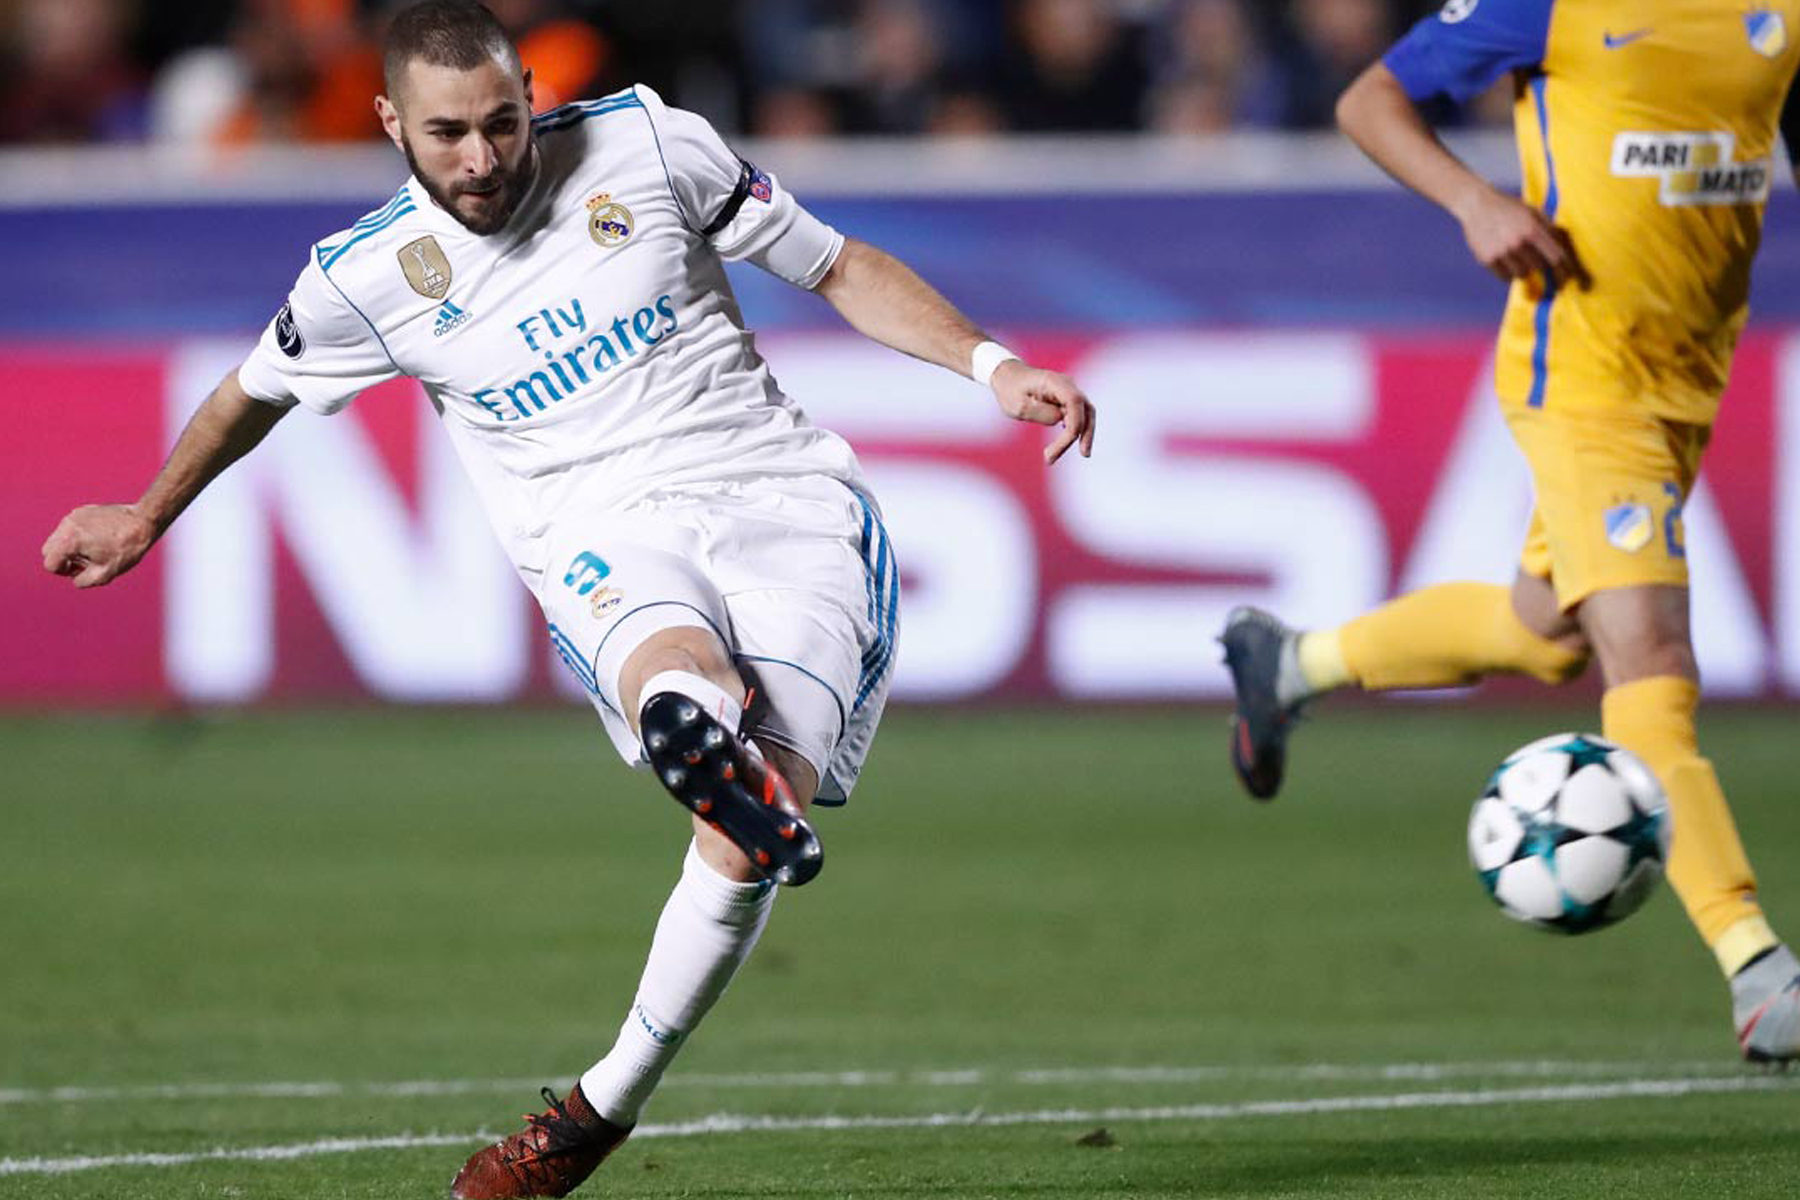 Real Madrid golea 0-6 al Apoel